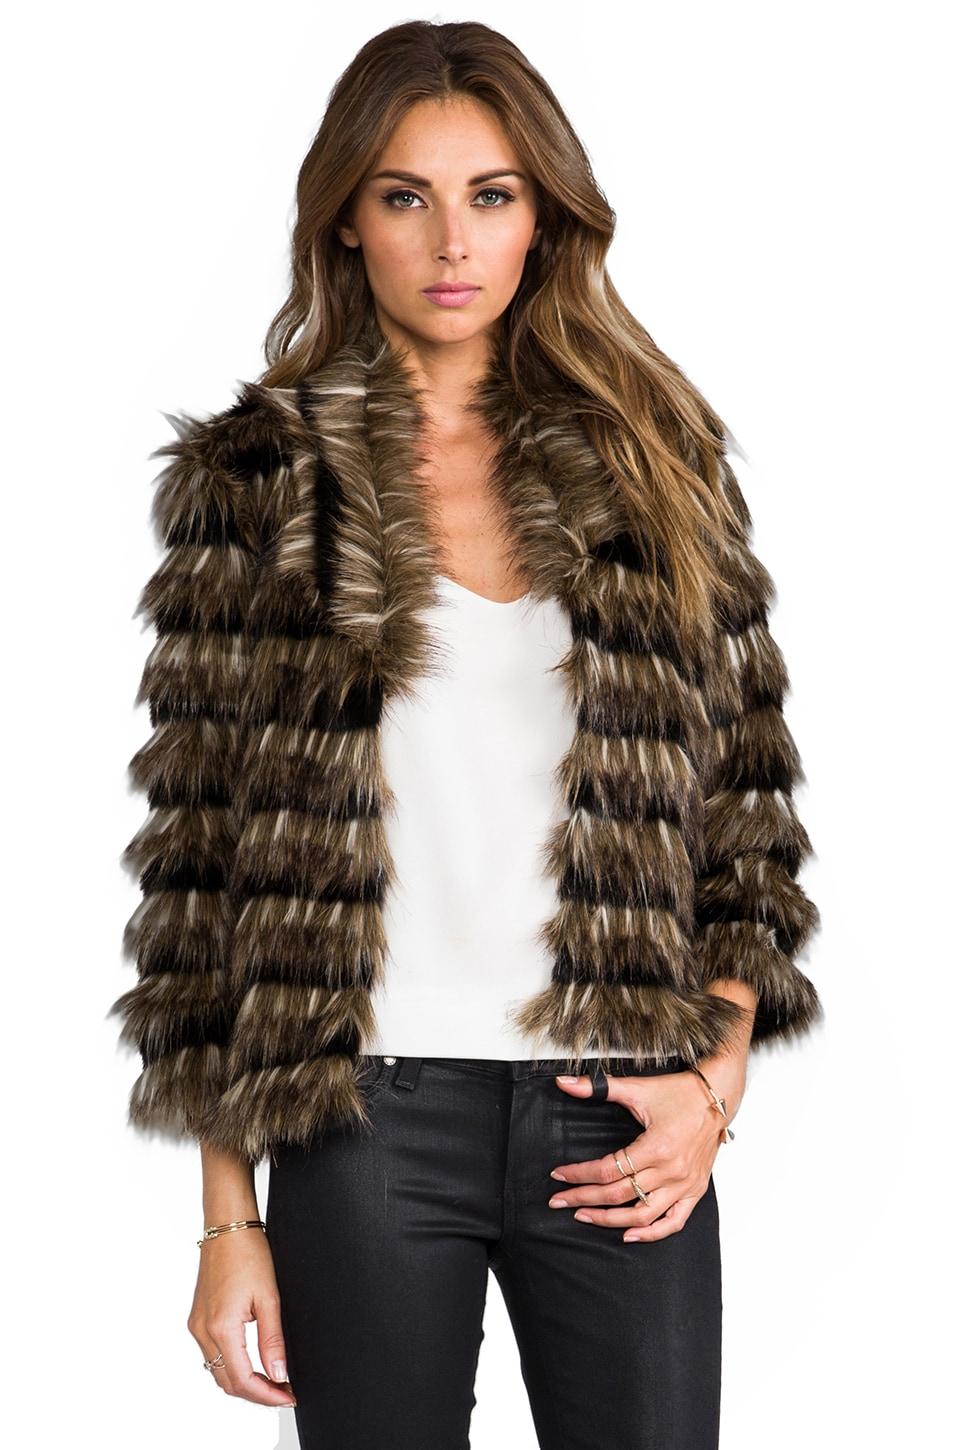 HEARTLOOM Sydney Faux Fur Coat in Natural